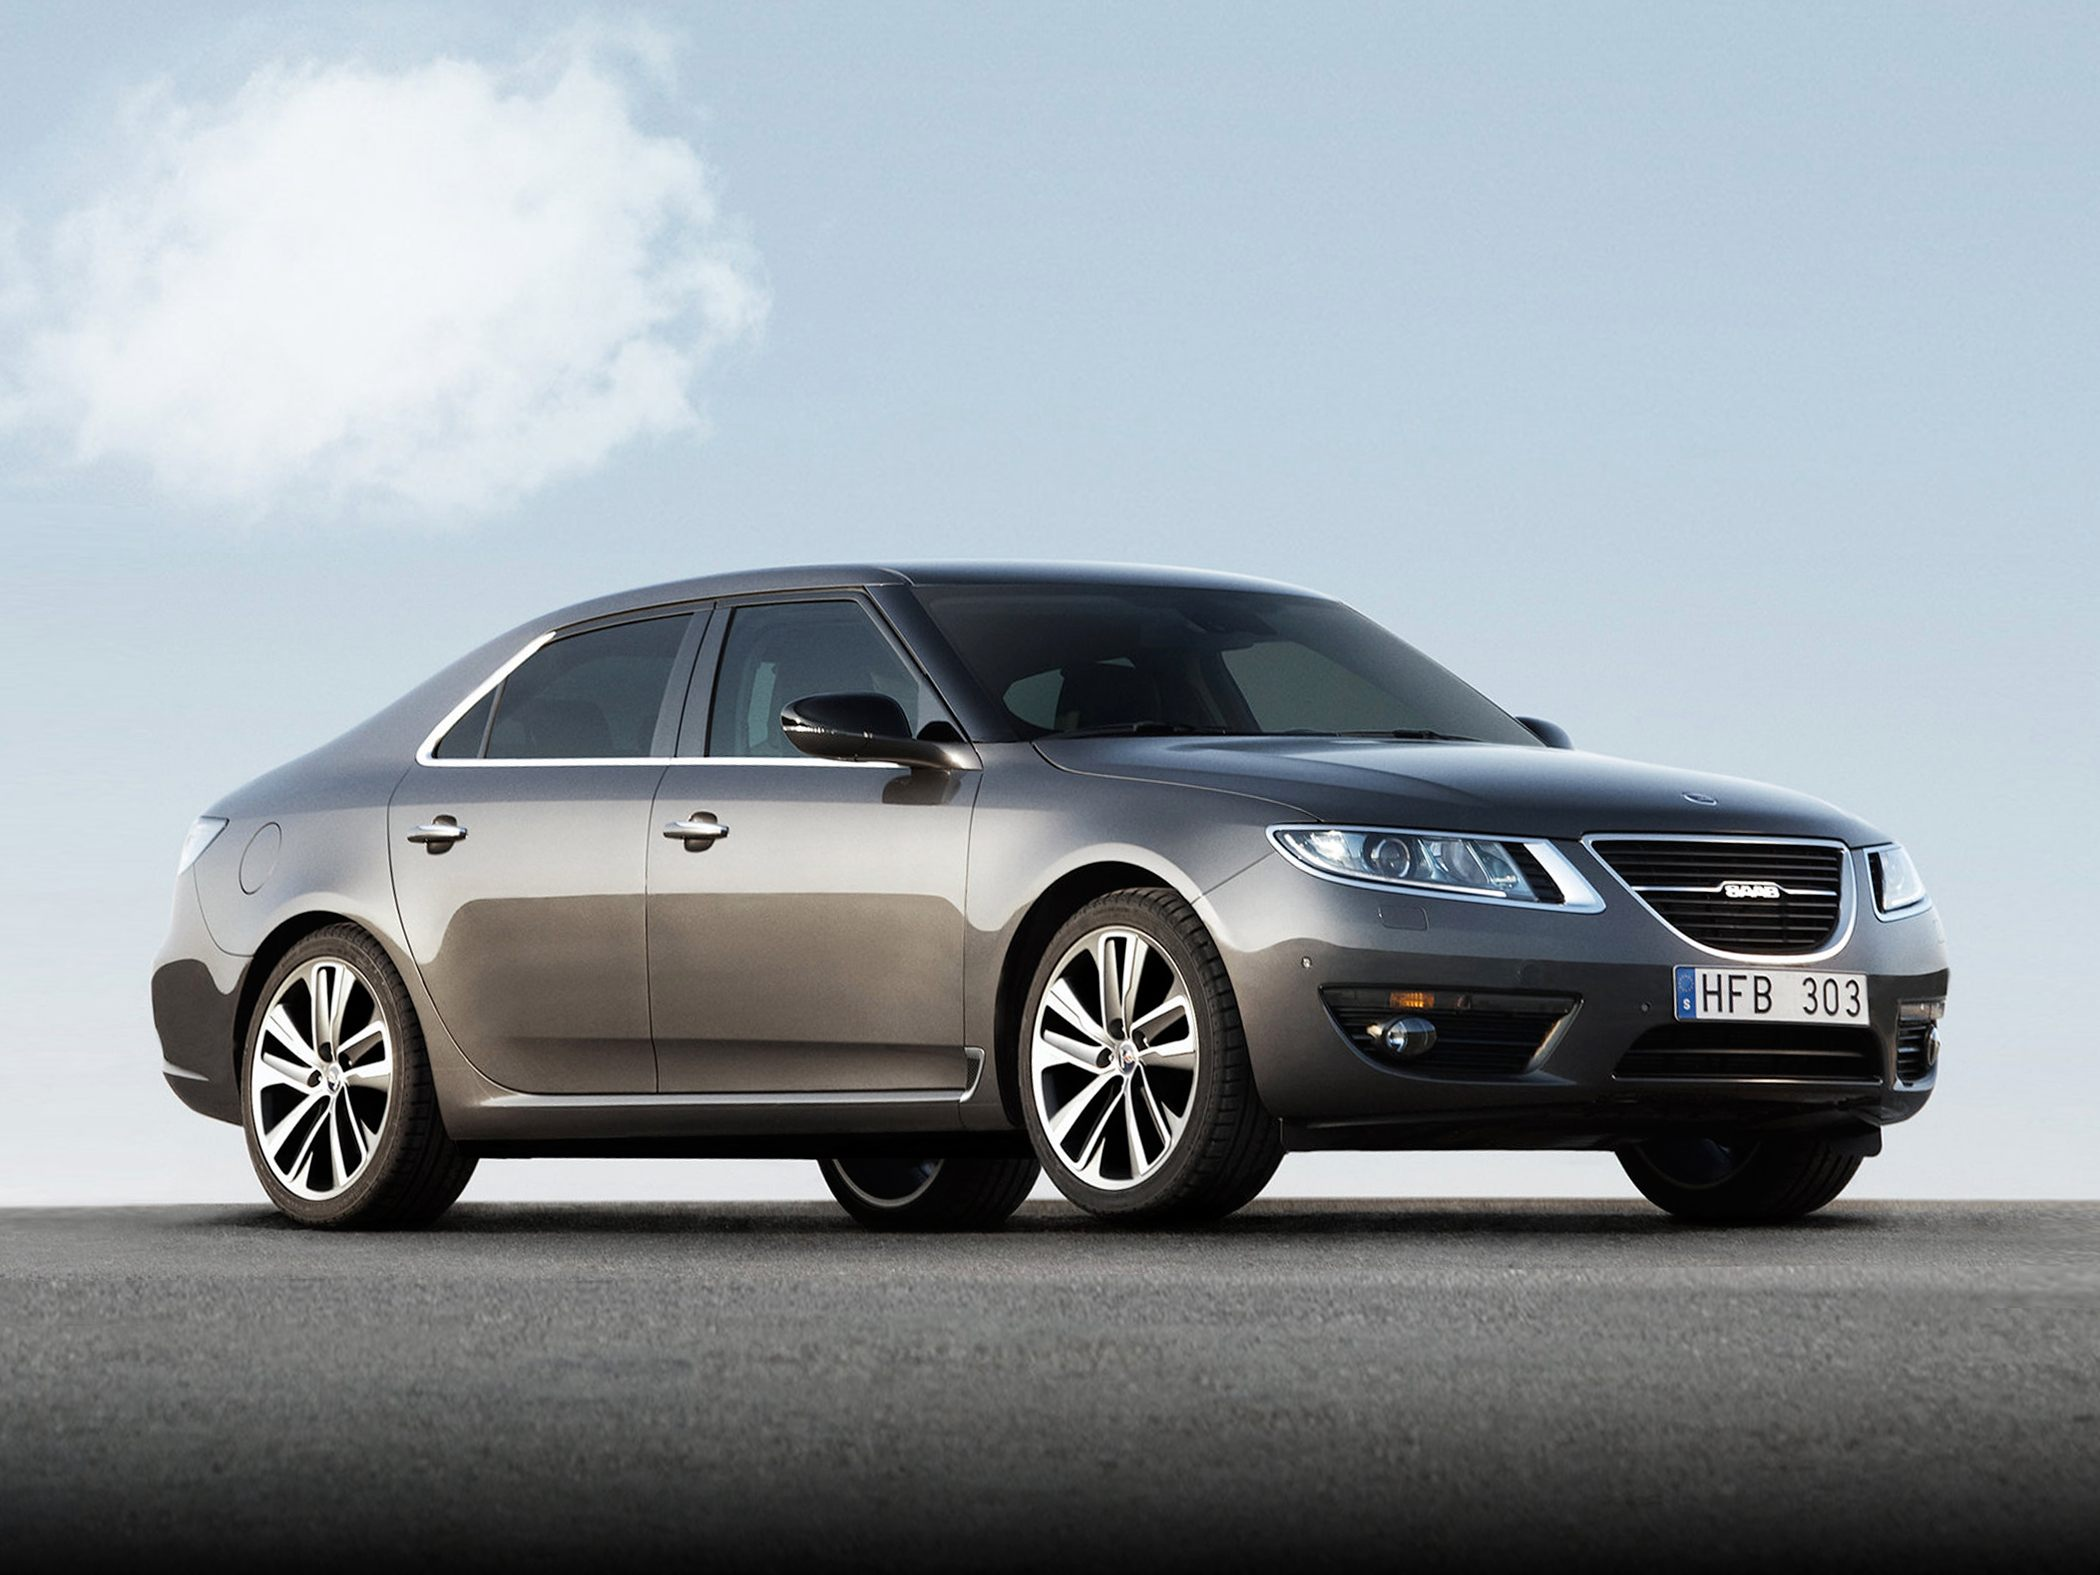 79 The 2020 Saab 9 5 Exterior and Interior